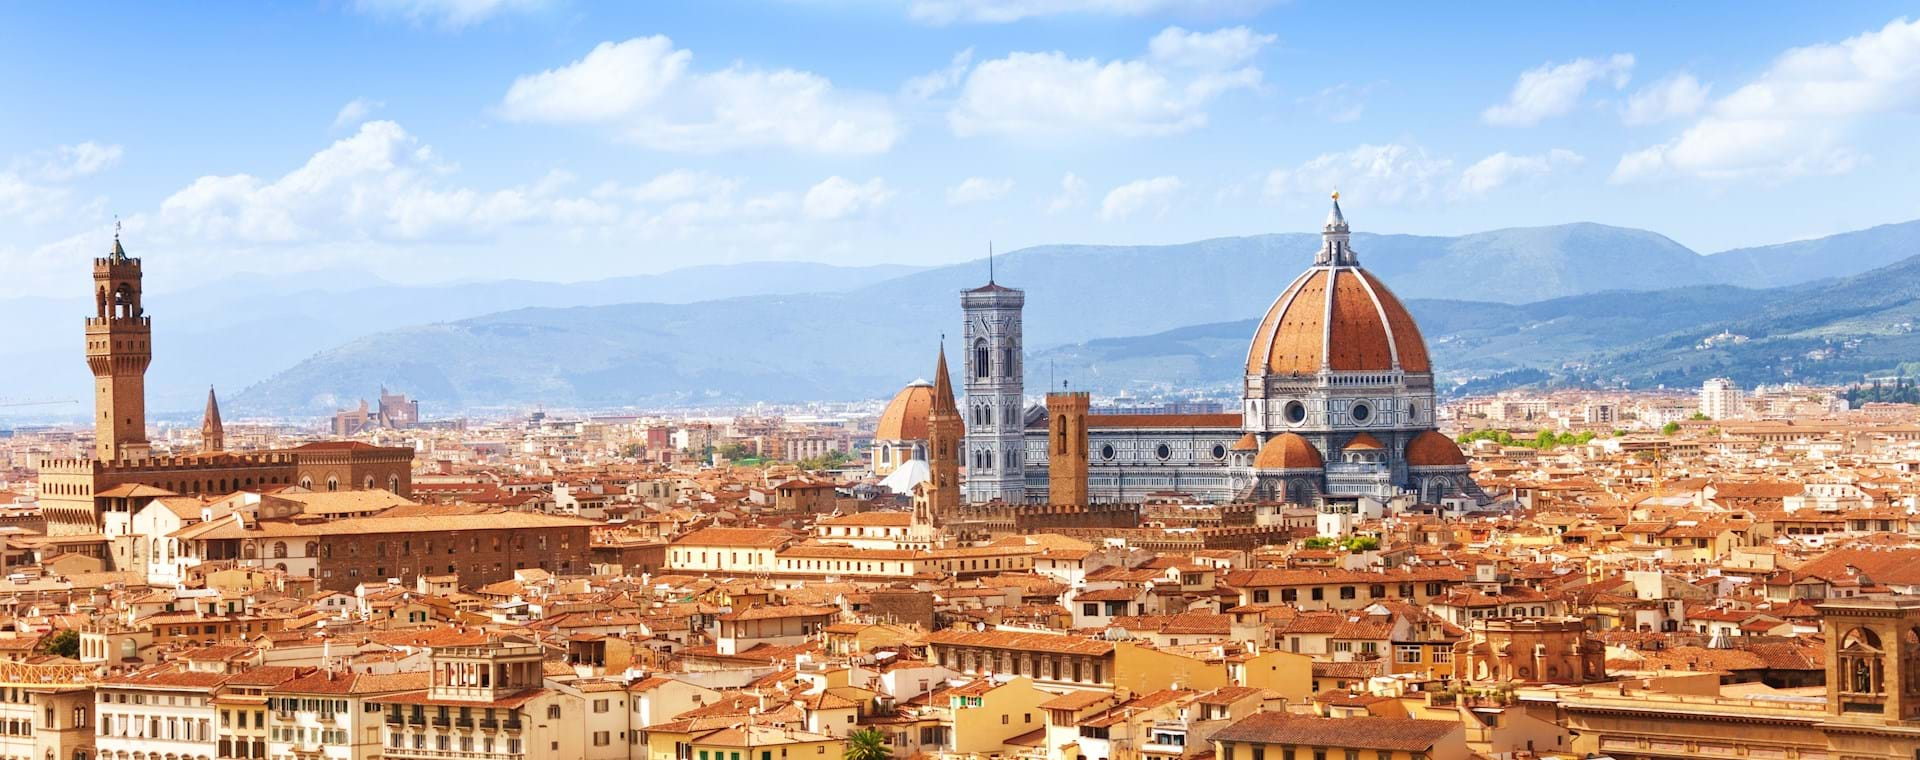 Full-Day Combo: Best of Florence & Uffizi Gallery Tour